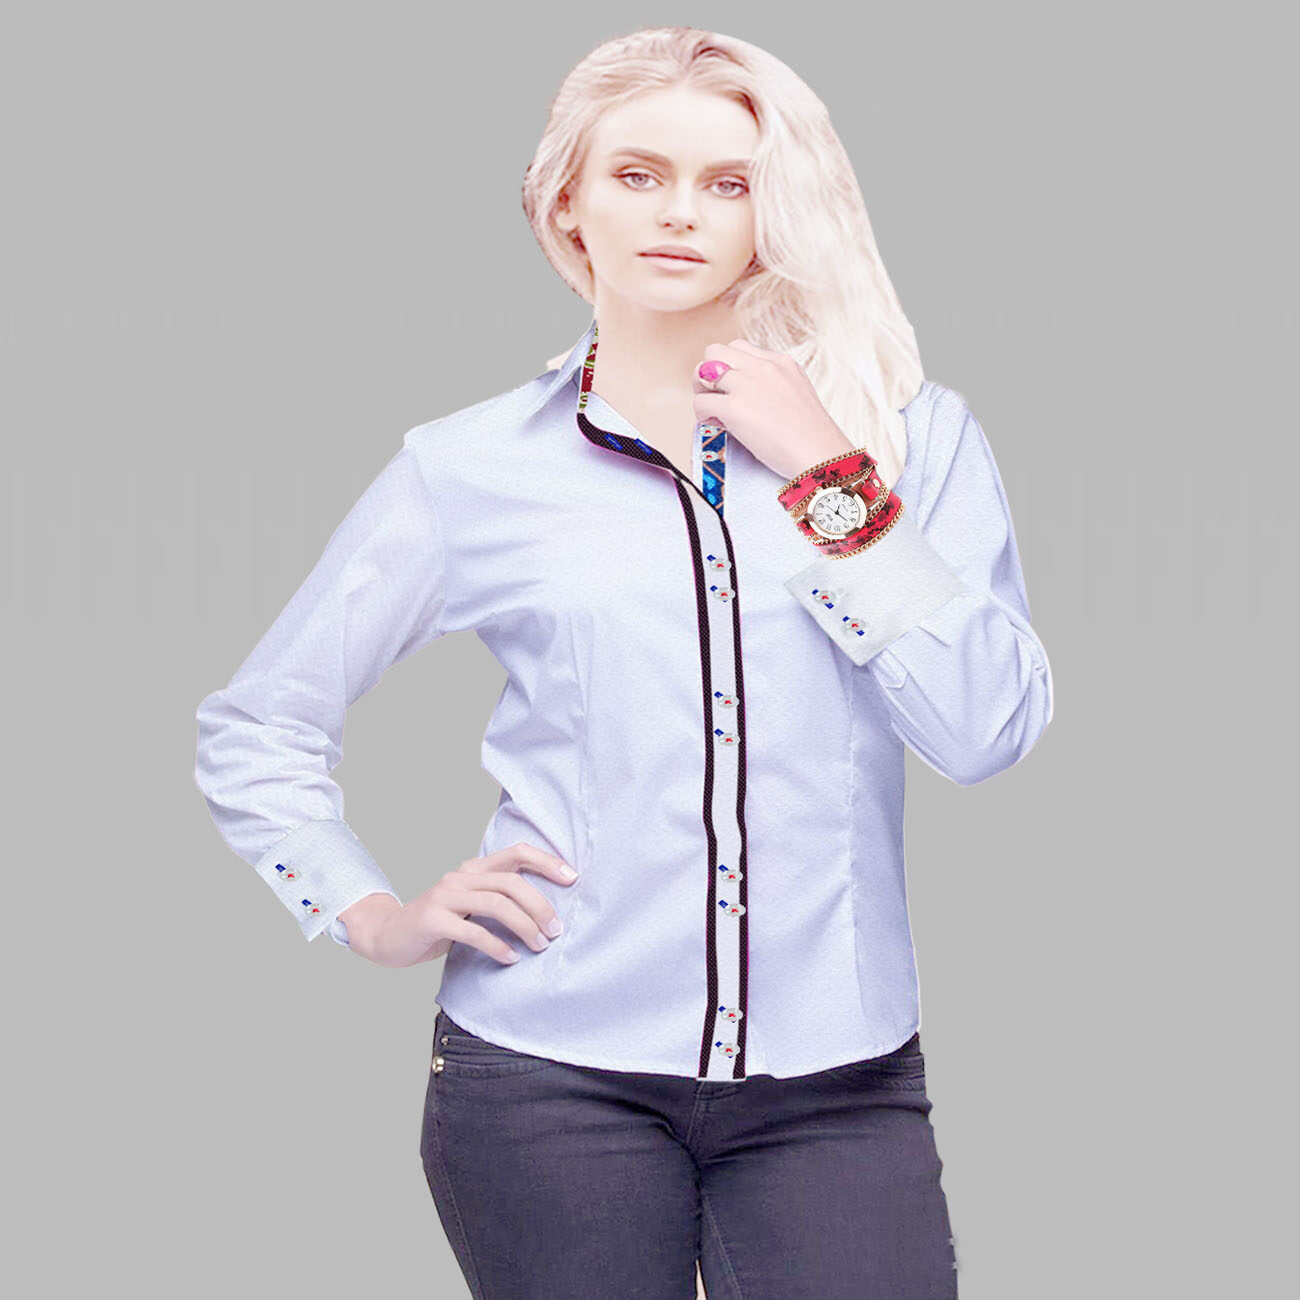 white women fashion shirt